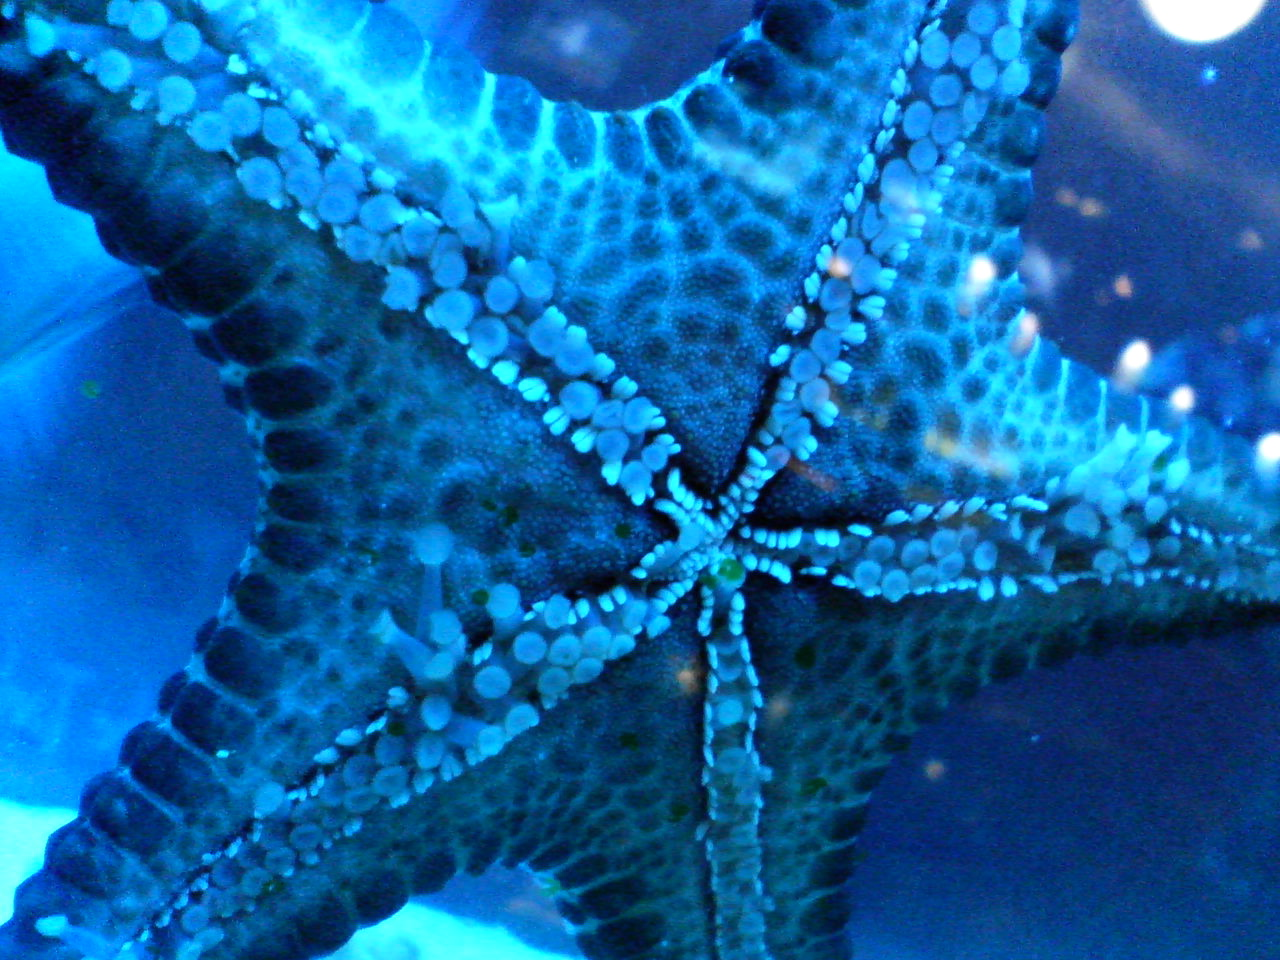 starfish, viewed from below at close range, with false color to make it appear light blue